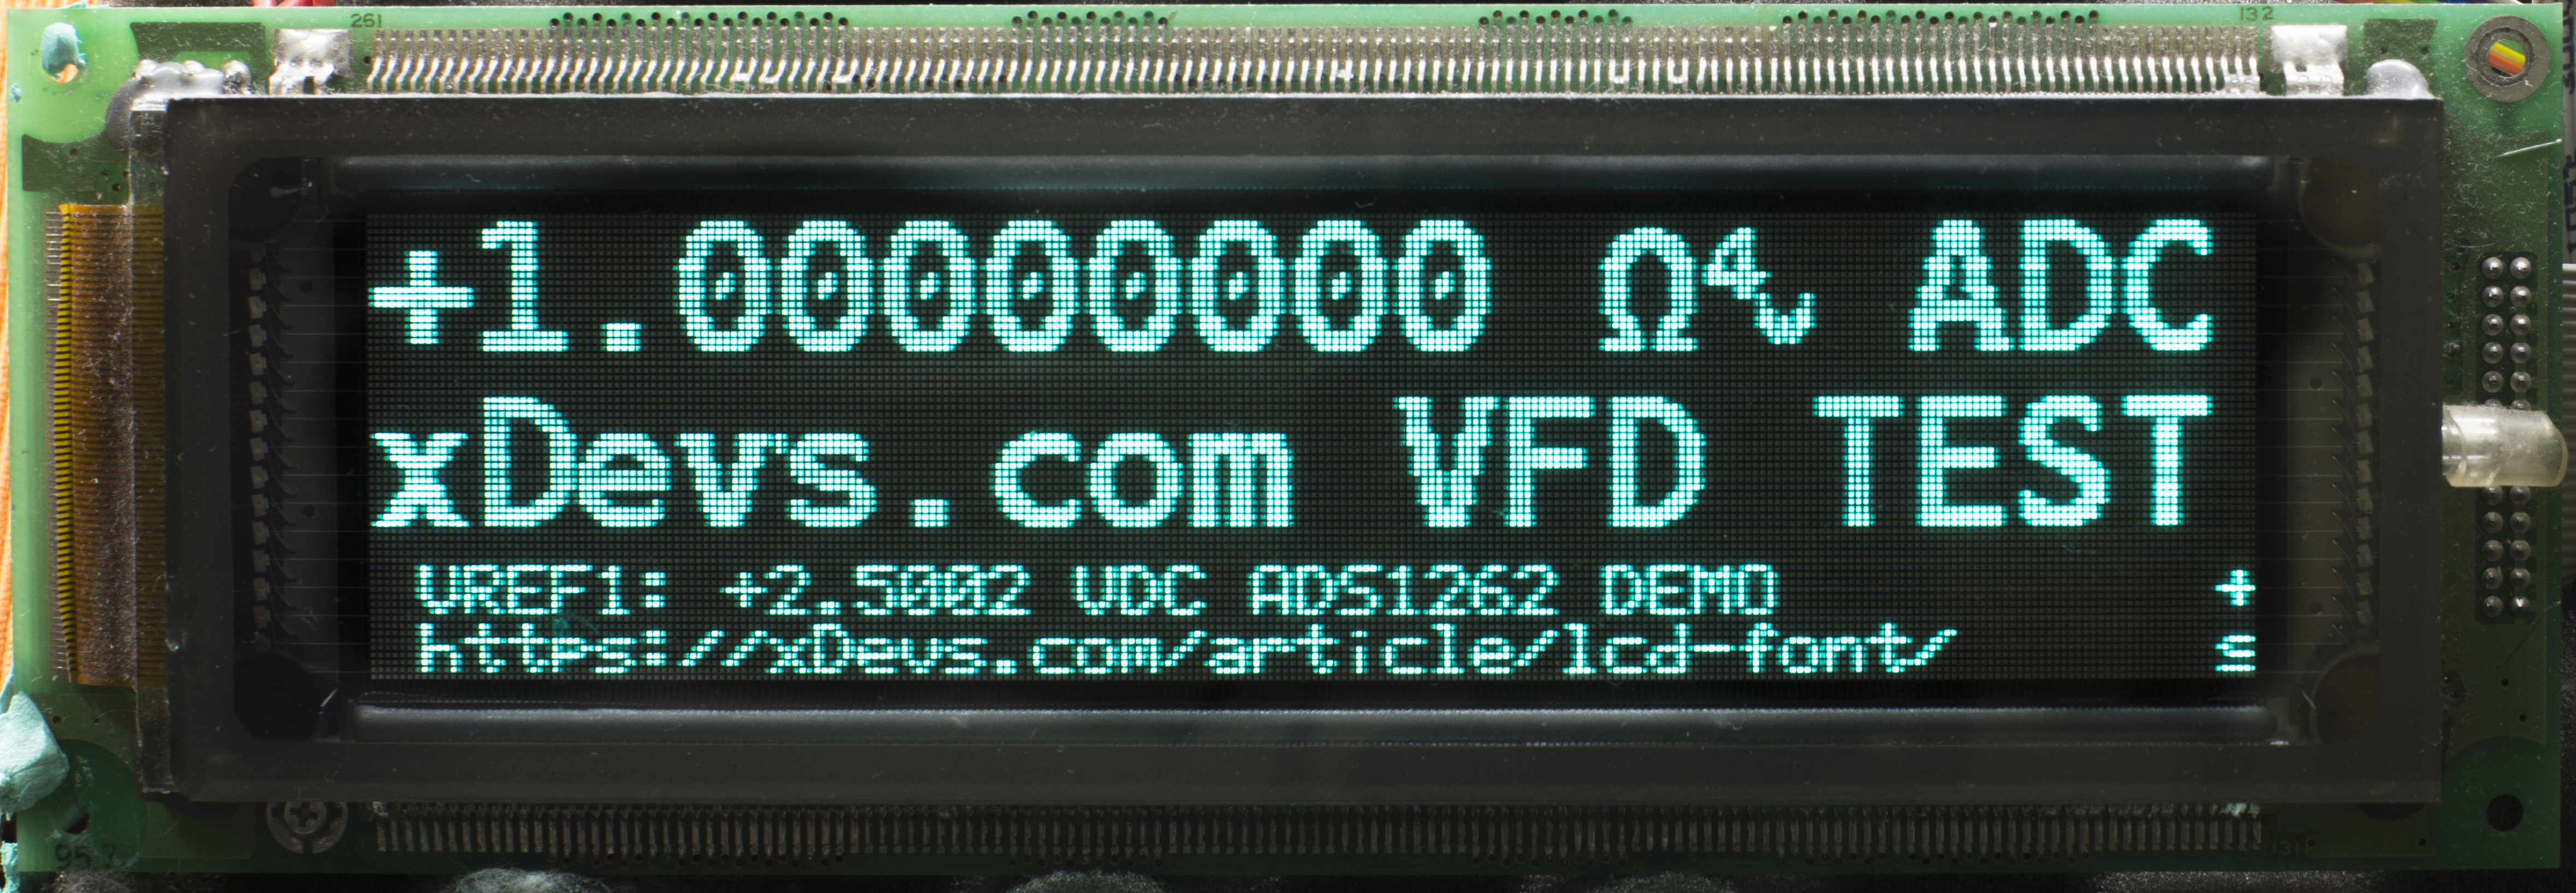 xDevs com | LCD font generation with font examples